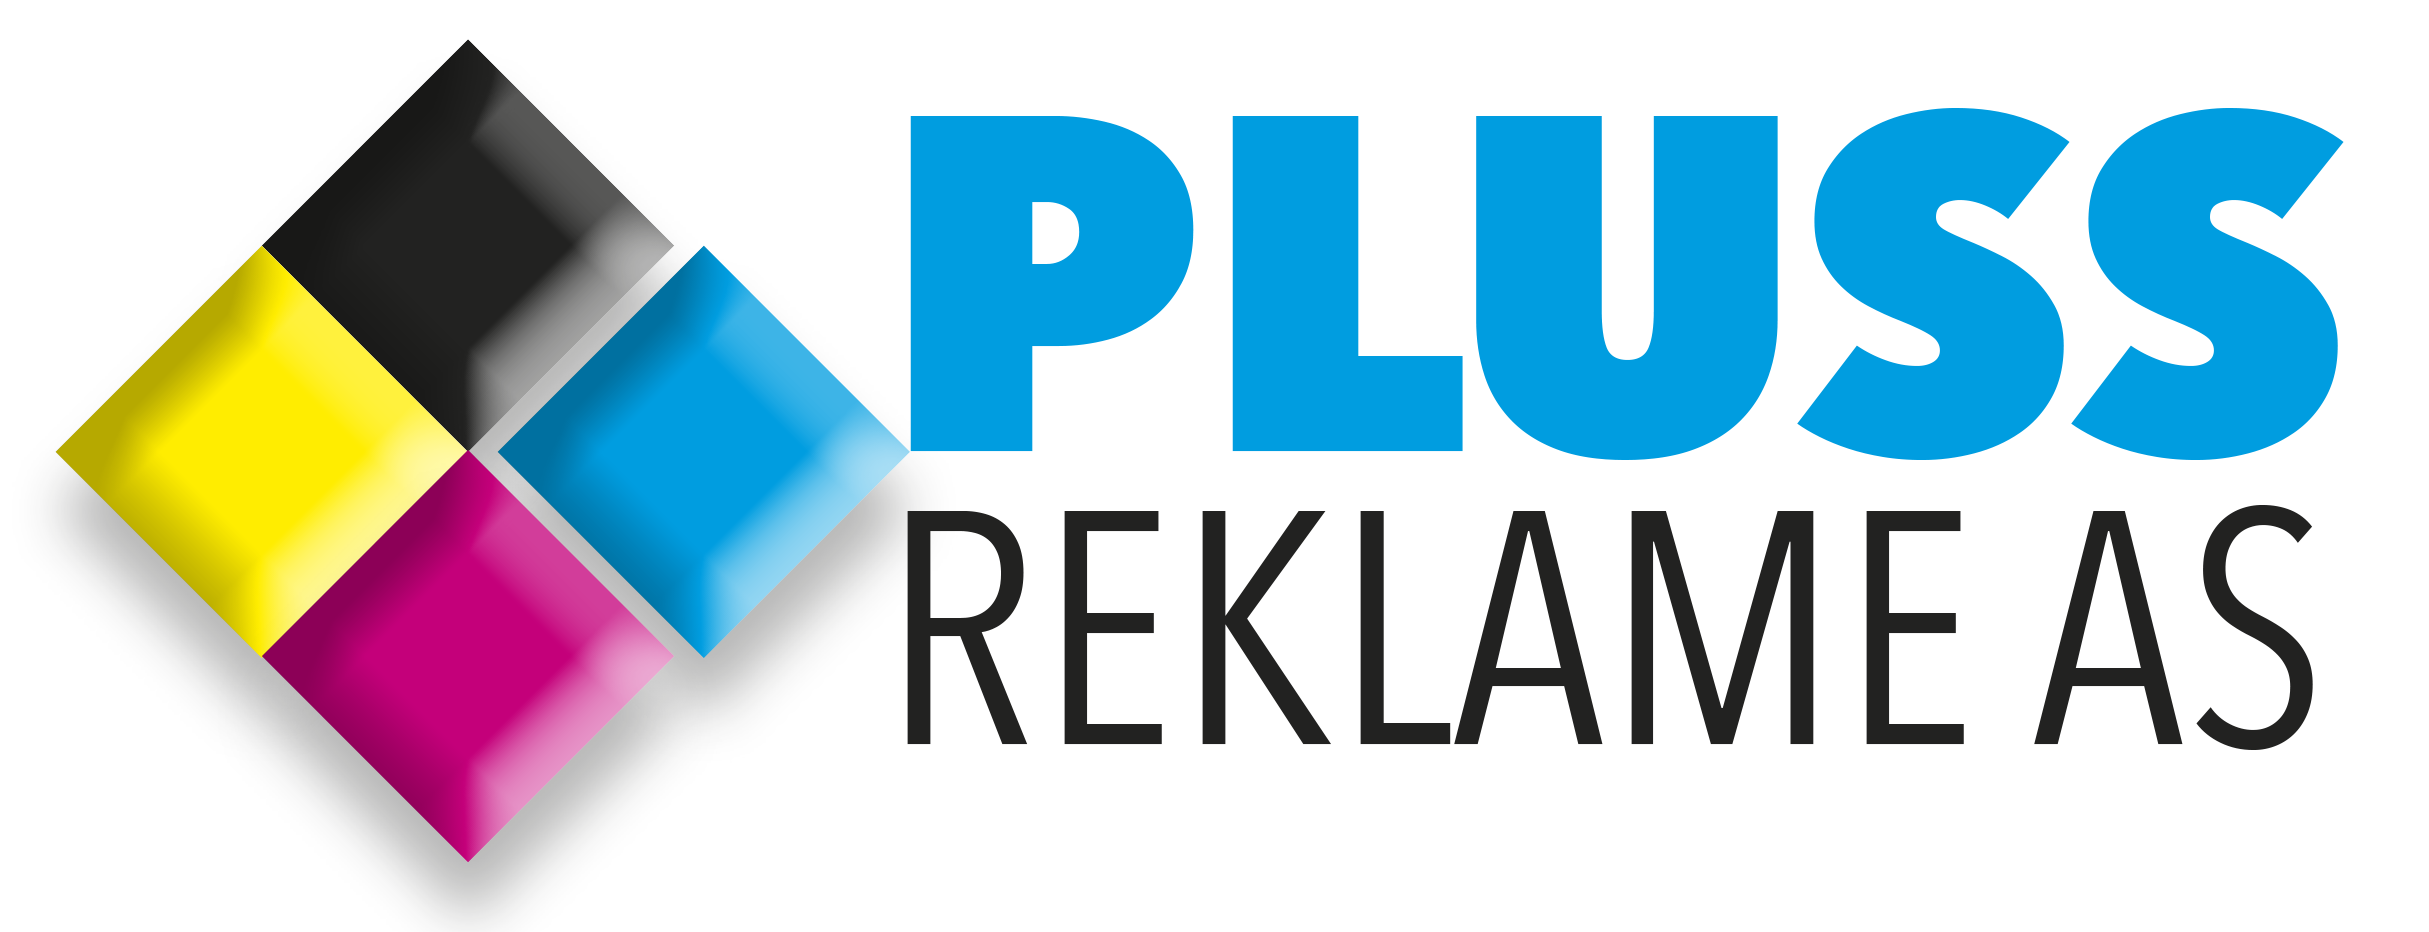 PLUSSREKLAME AS